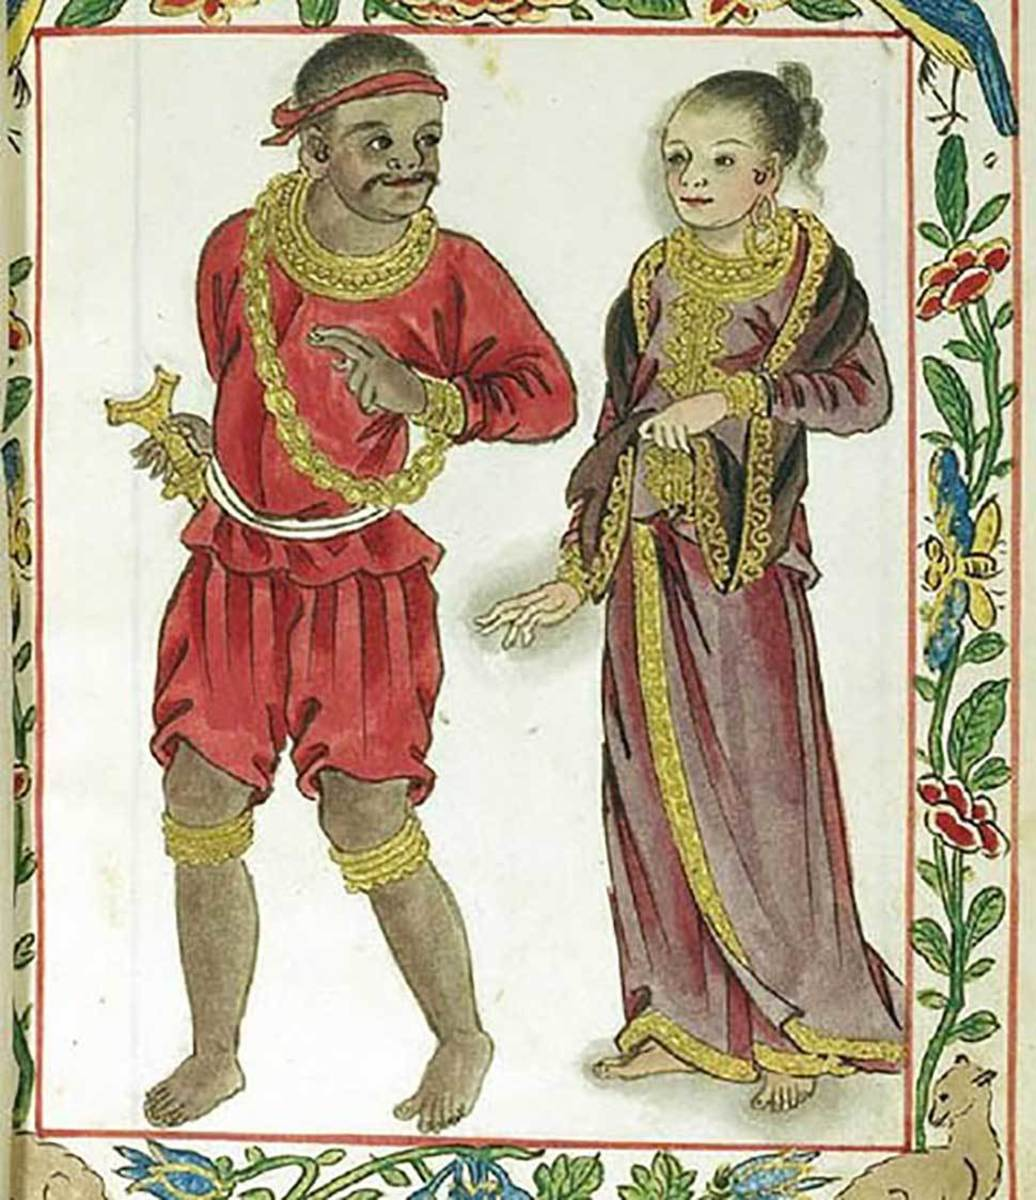 What the real rulers of Luzon looked like, as was shown in the Boxer Codex.